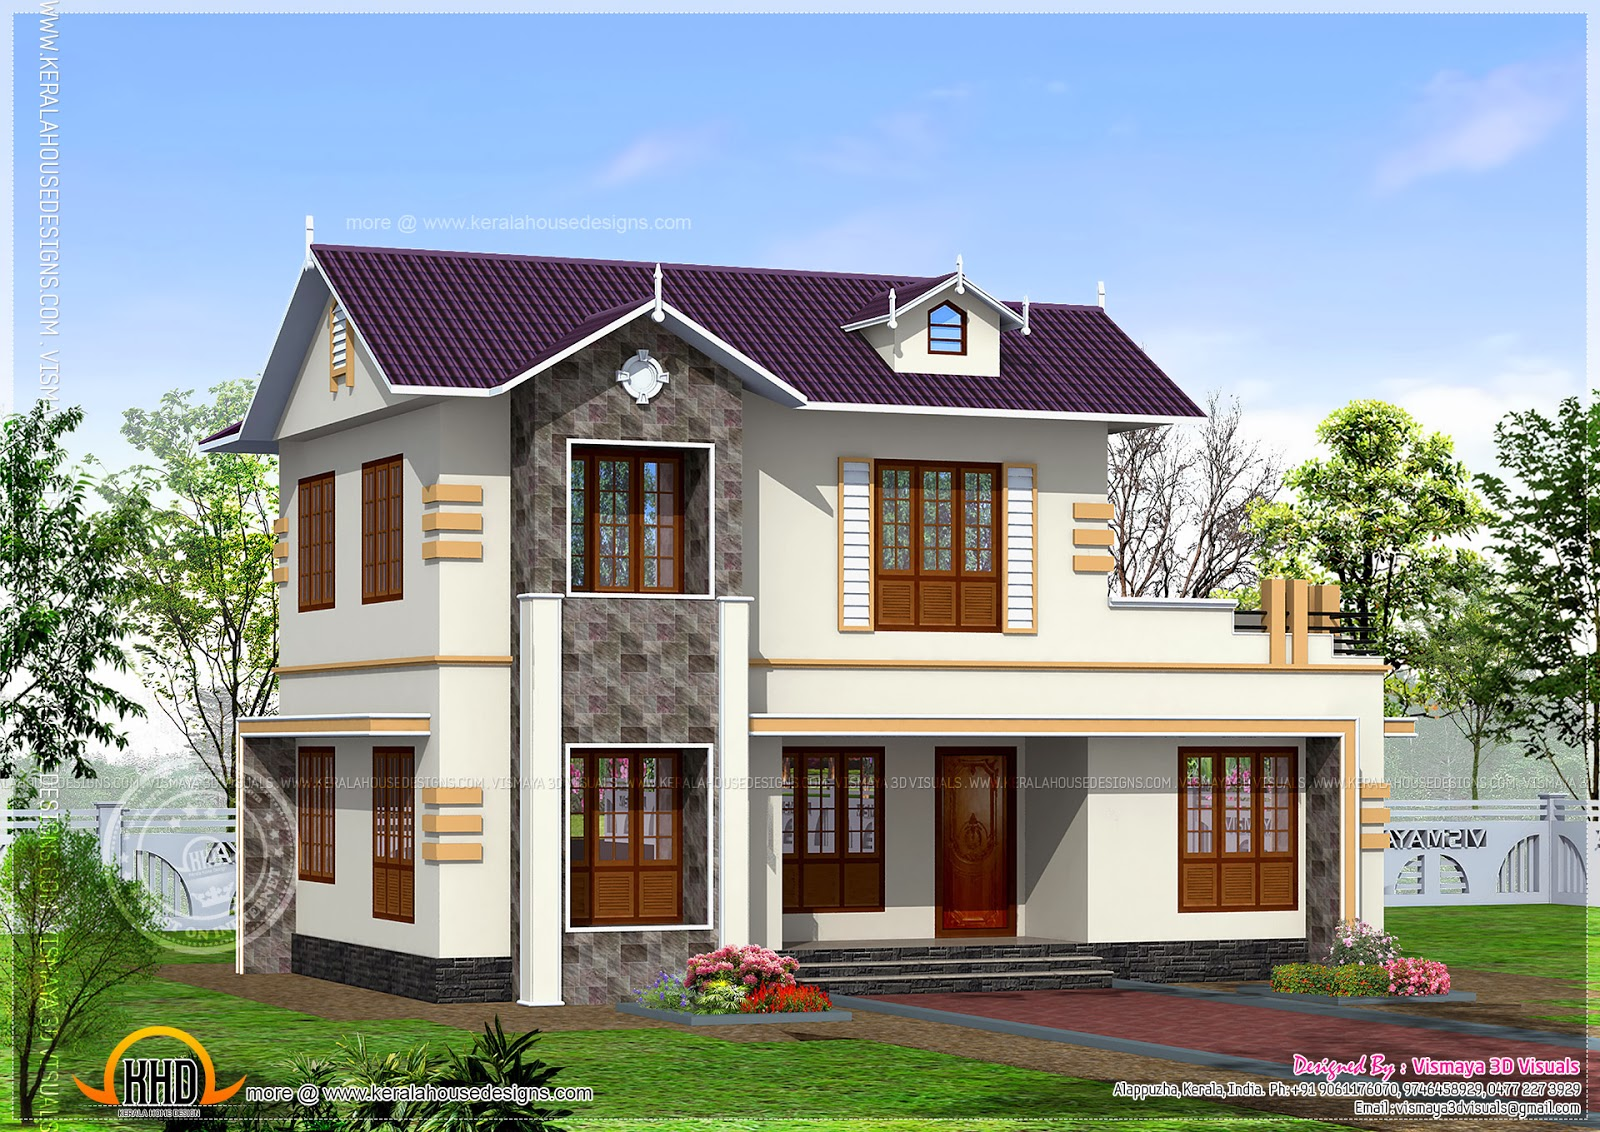 Ordinary Home Design 1700 Square Feet Part - 12: 1700 Square Feet House